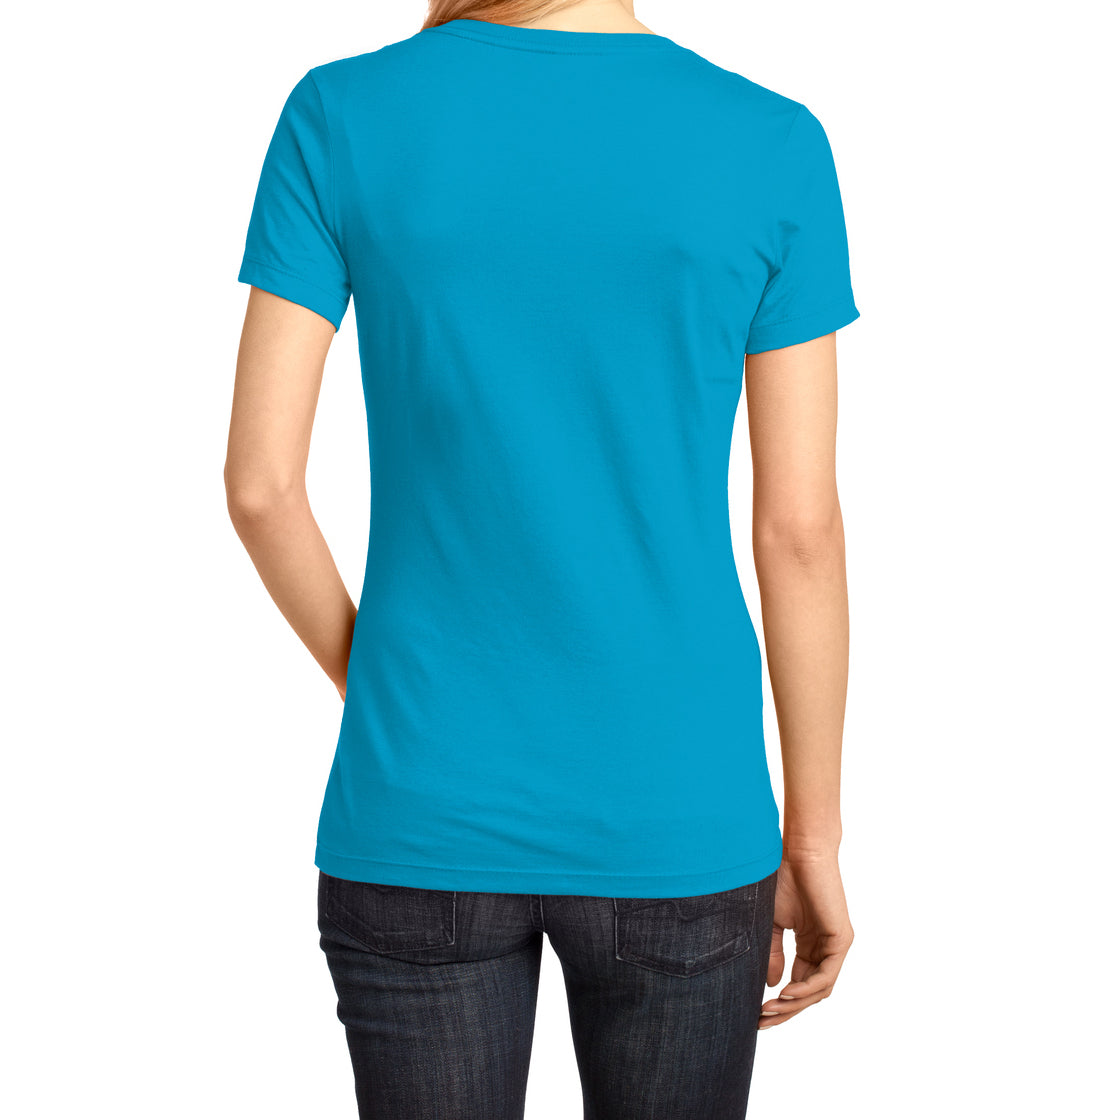 Ladies Perfect Weight V-Neck Tee - Bright Turquoise - Back